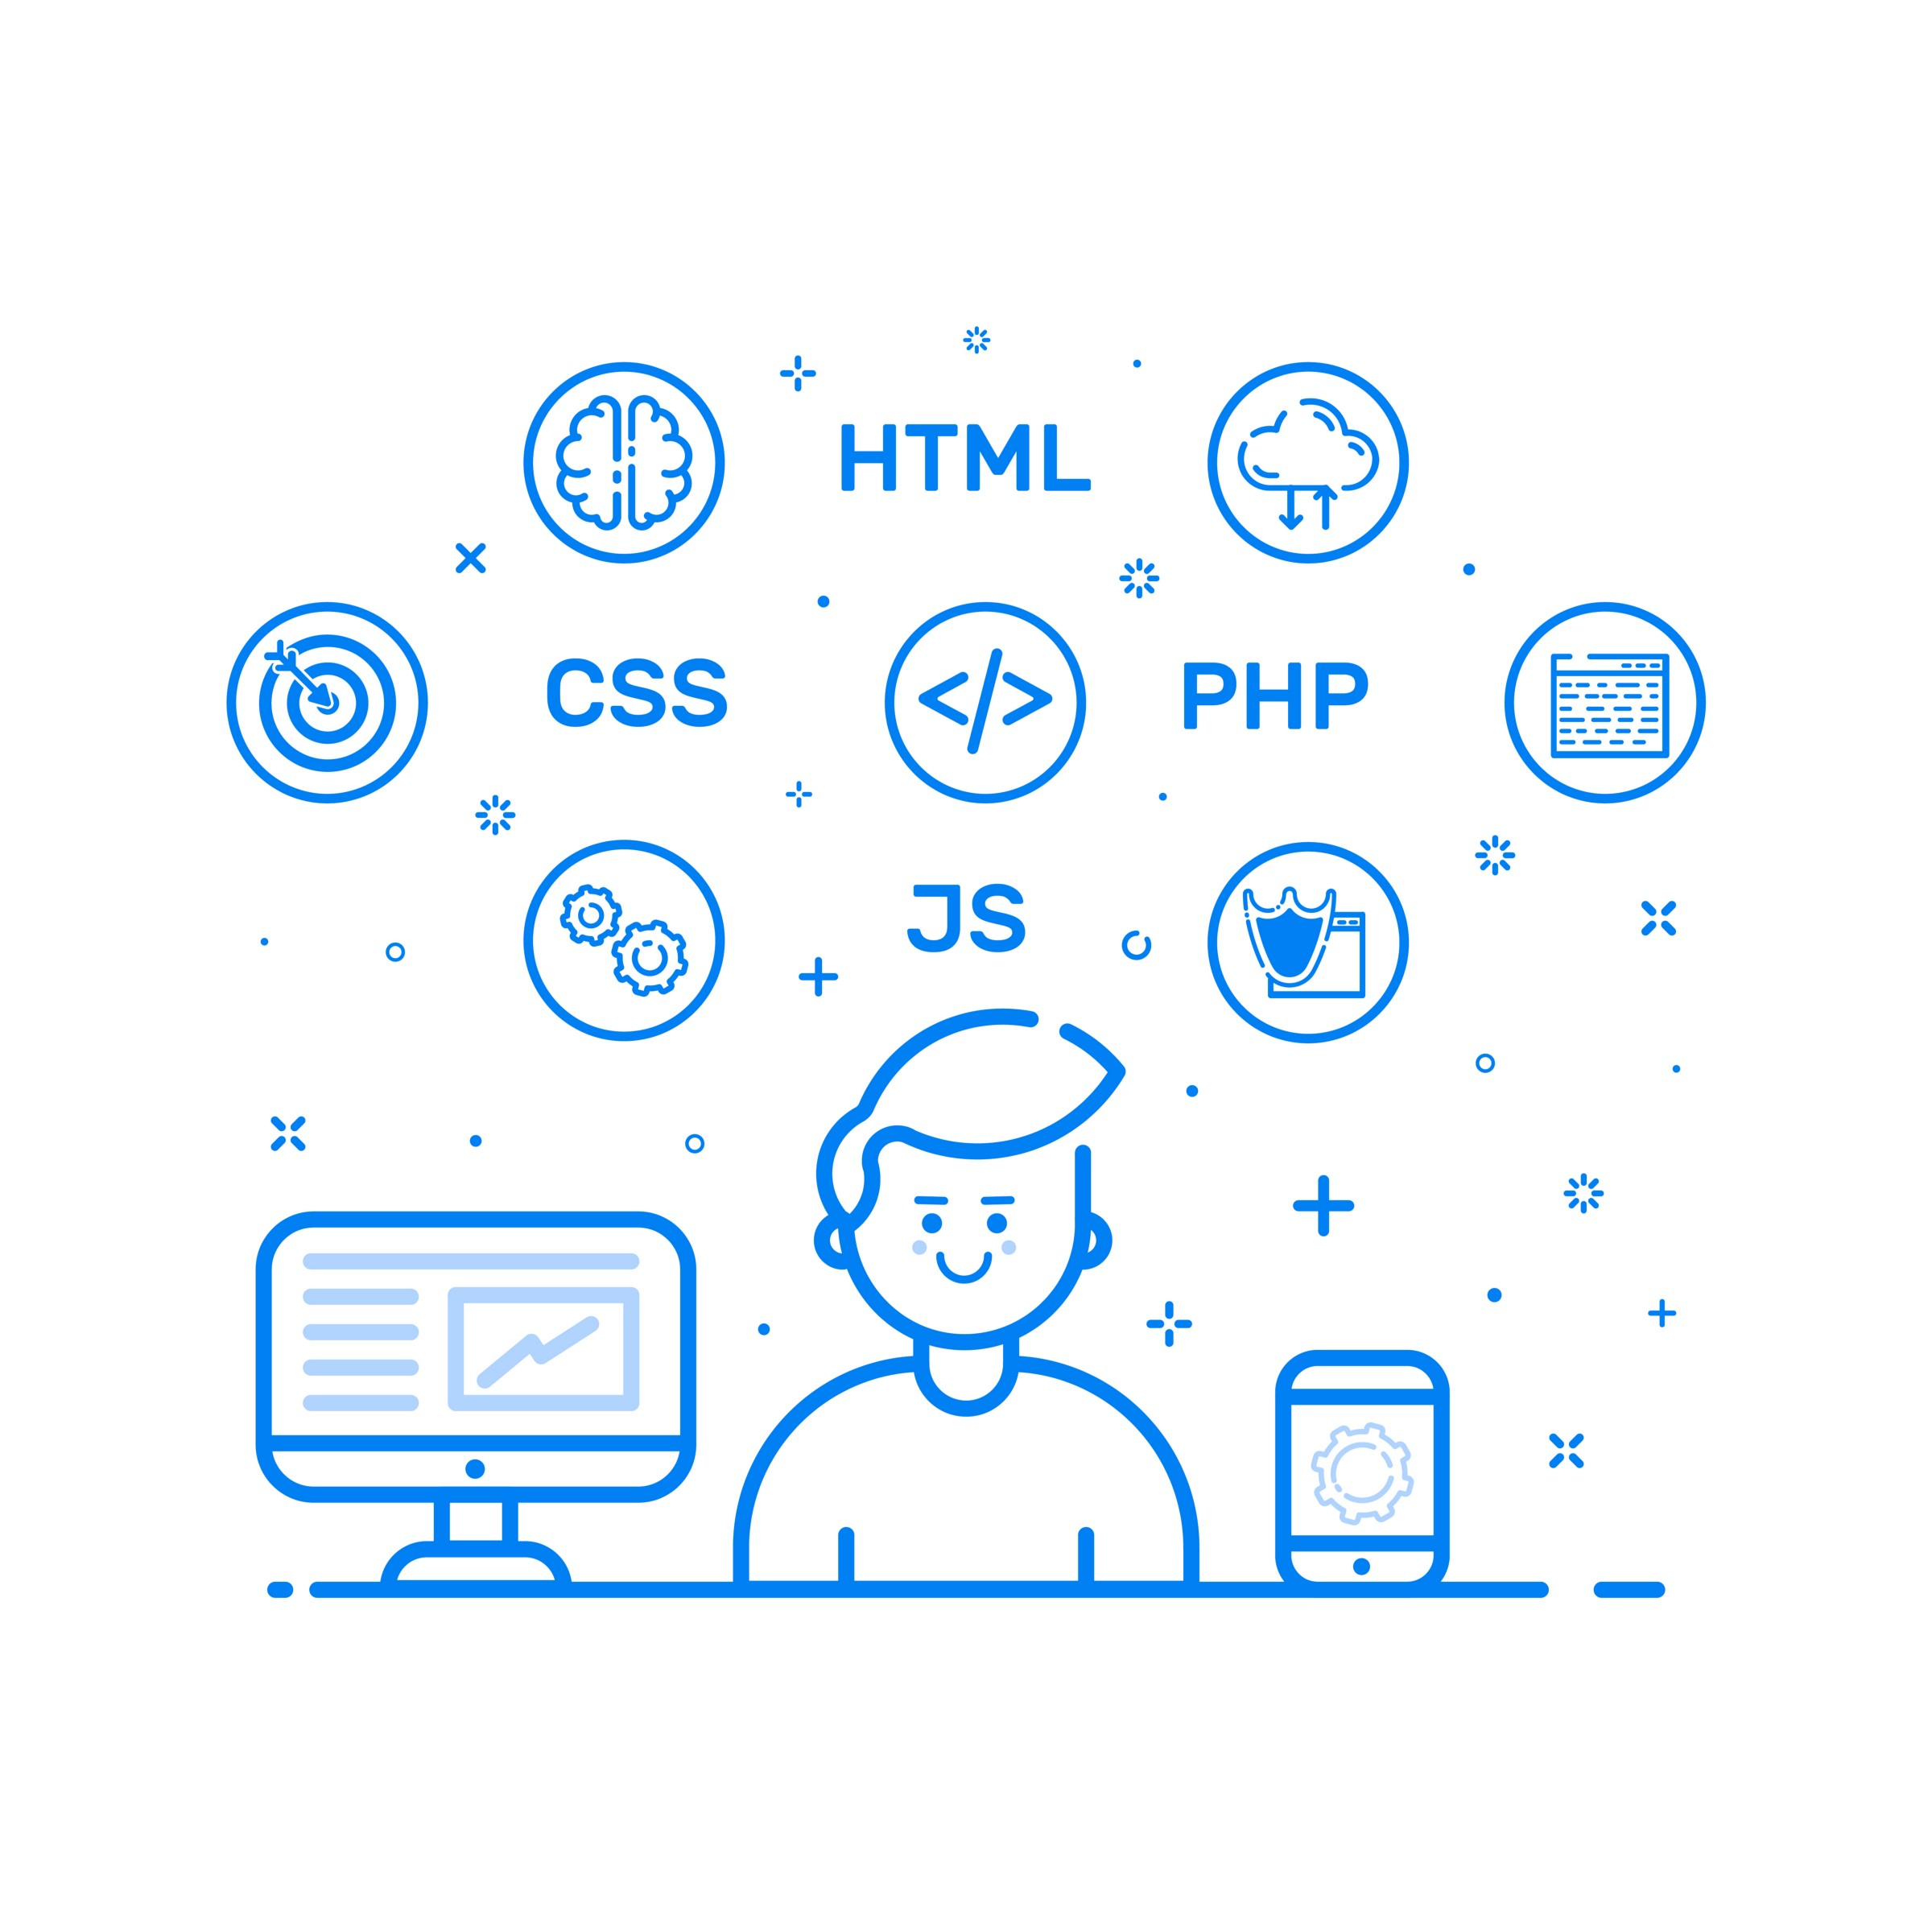 /build-a-jamstack-powered-website-in-4-steps-b1282d545197 feature image